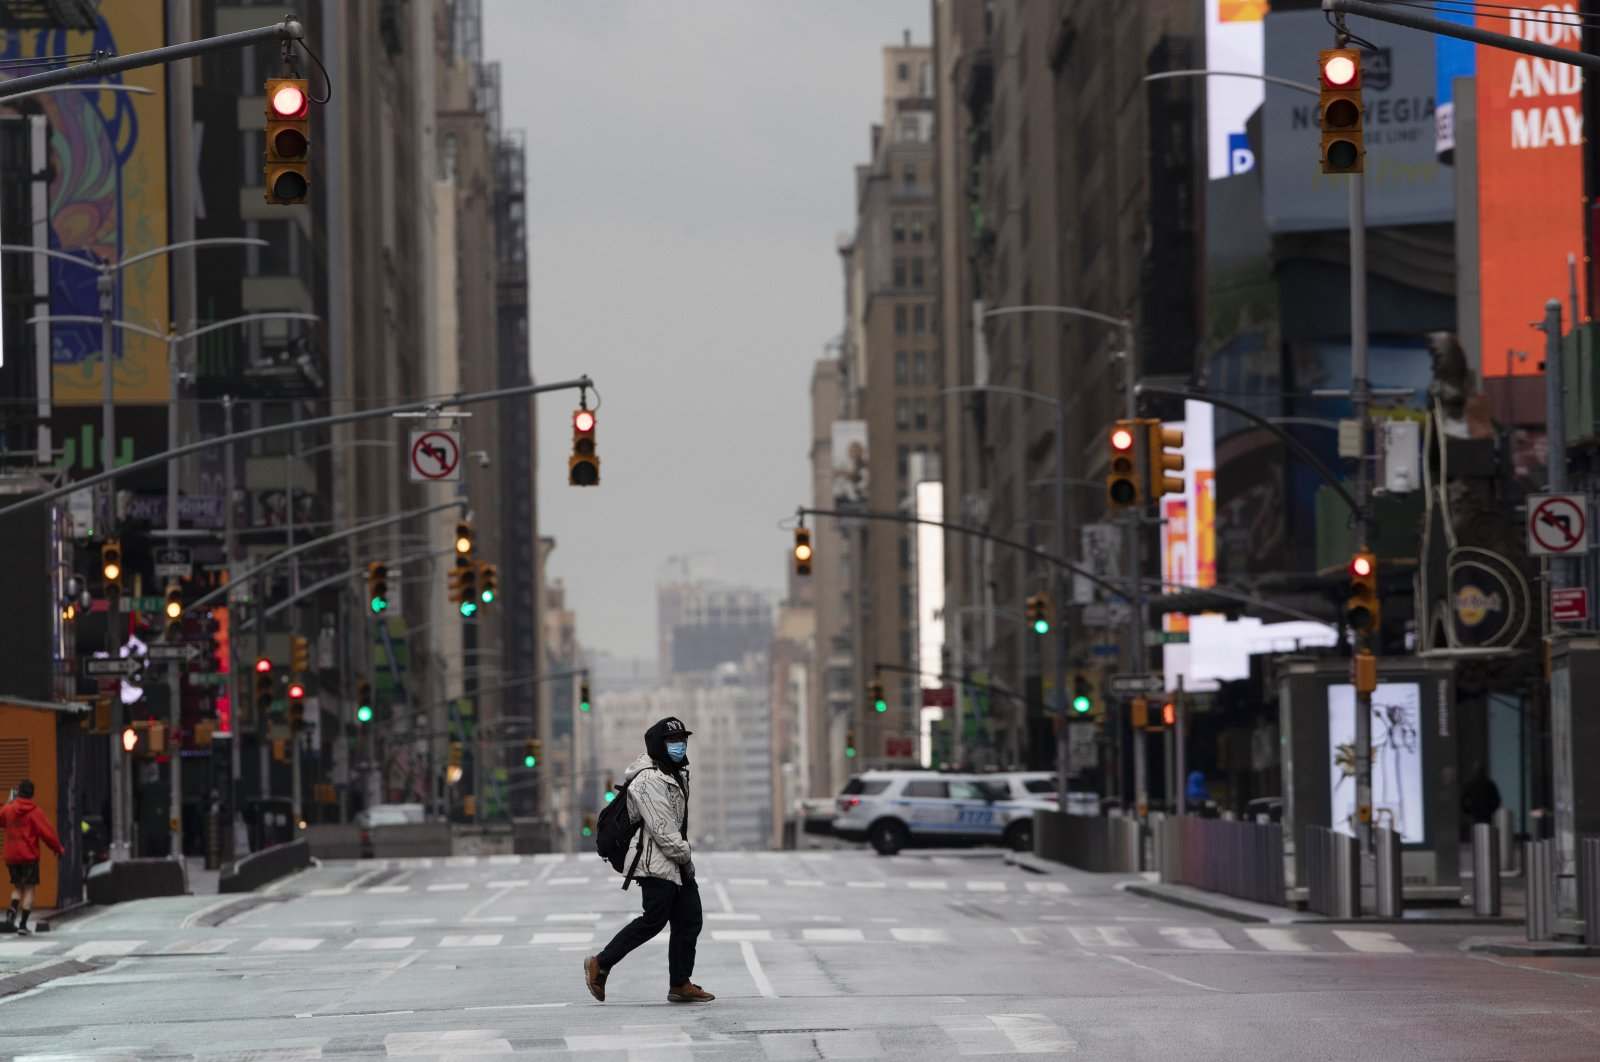 A man wearing a mask crosses the street in an empty Times Square, New York City, April 9, 2020. (AP Photo)